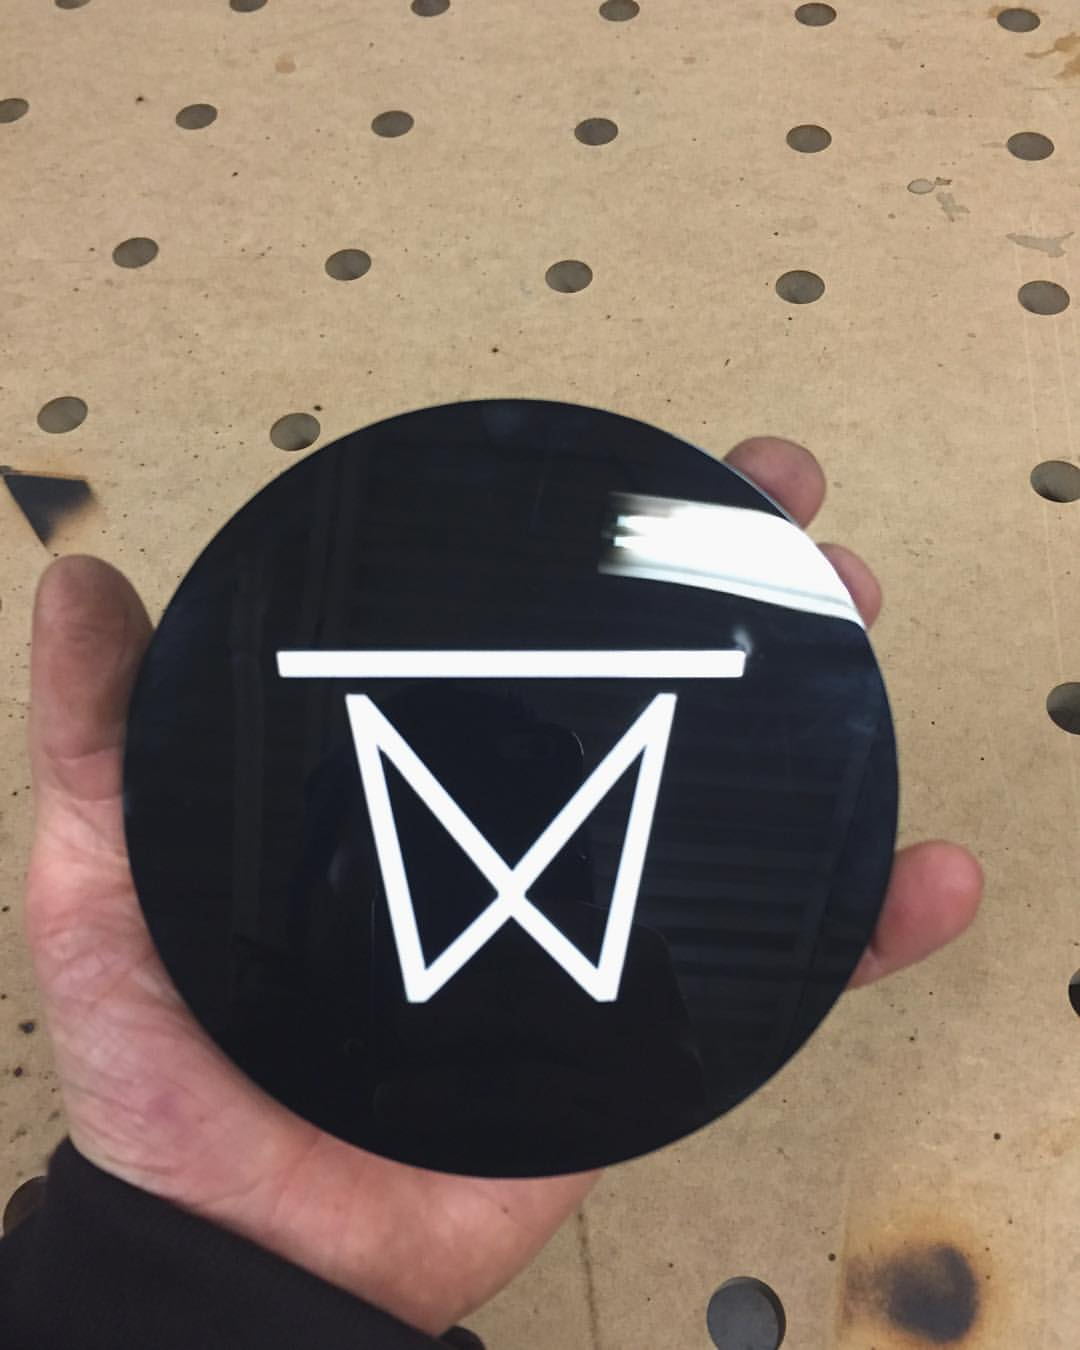 My logo in acrylic. I'm going to attach these to everything, acrylic logos are the new stickers.